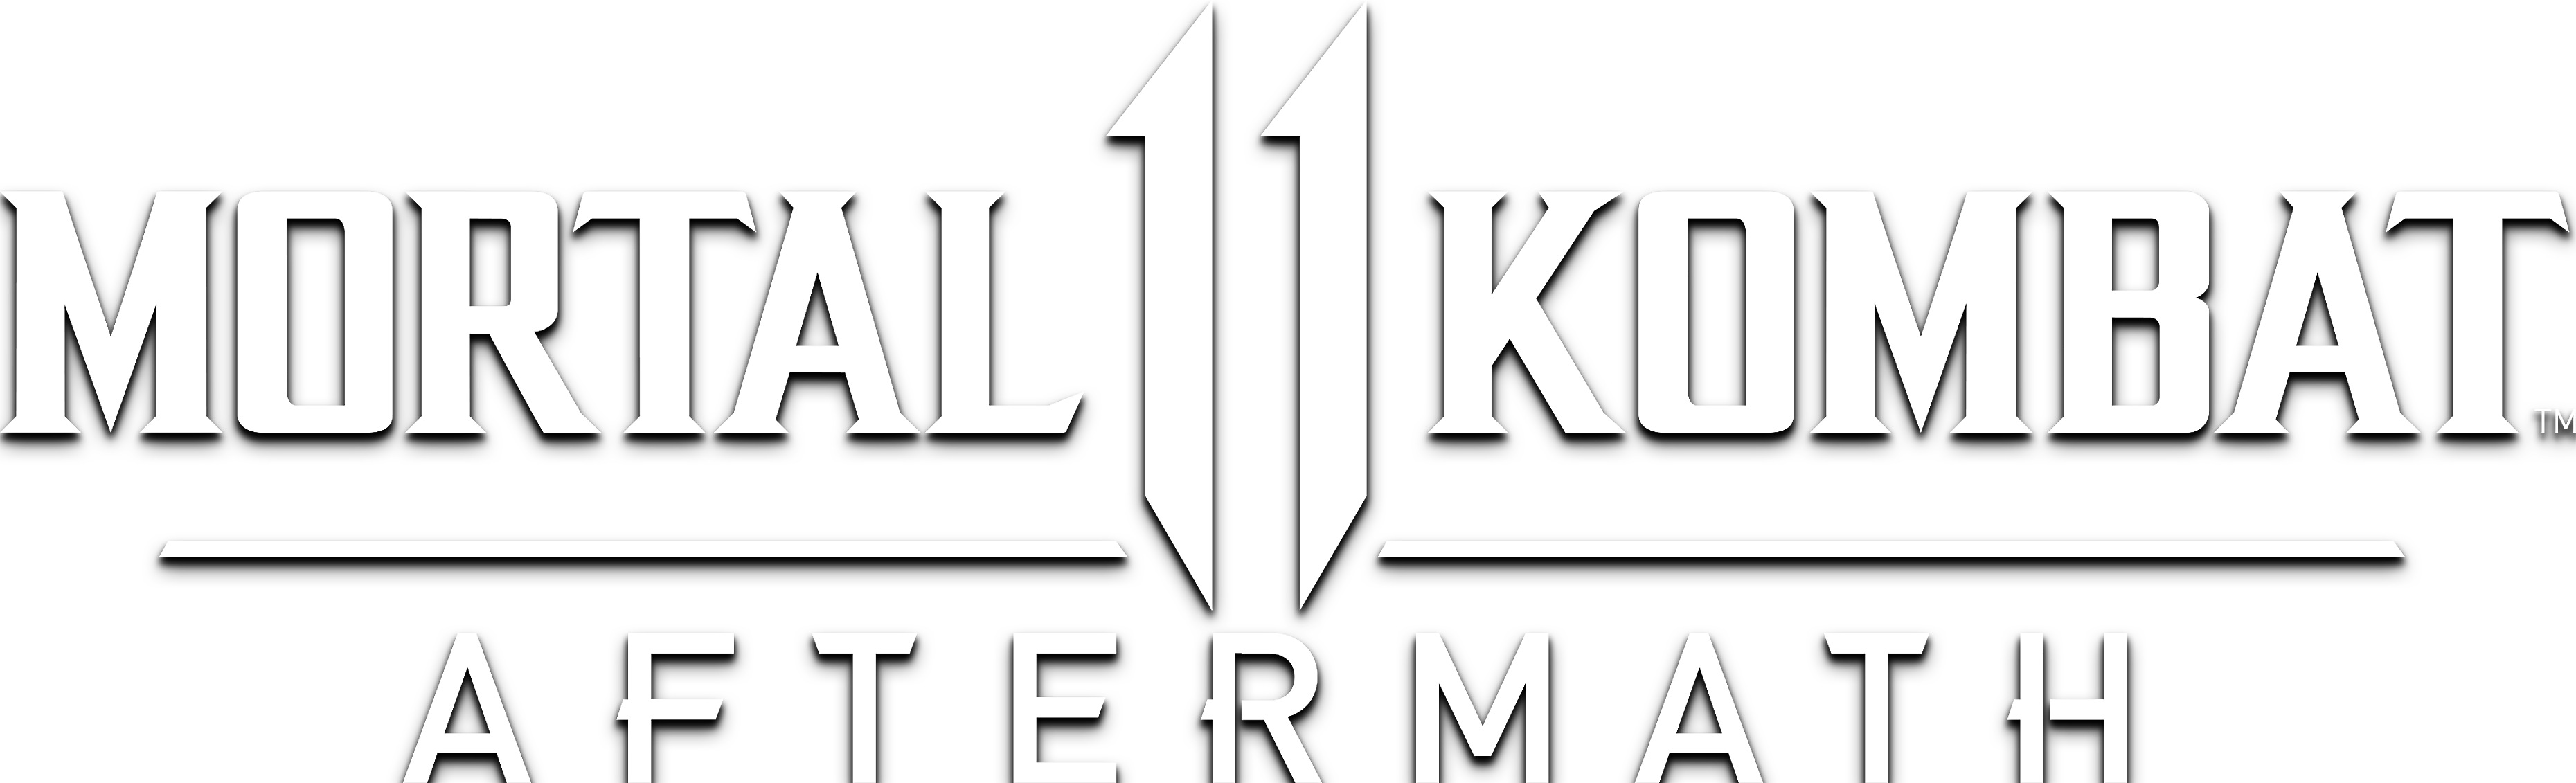 Mortal Kombat 11: Aftermath - Logo